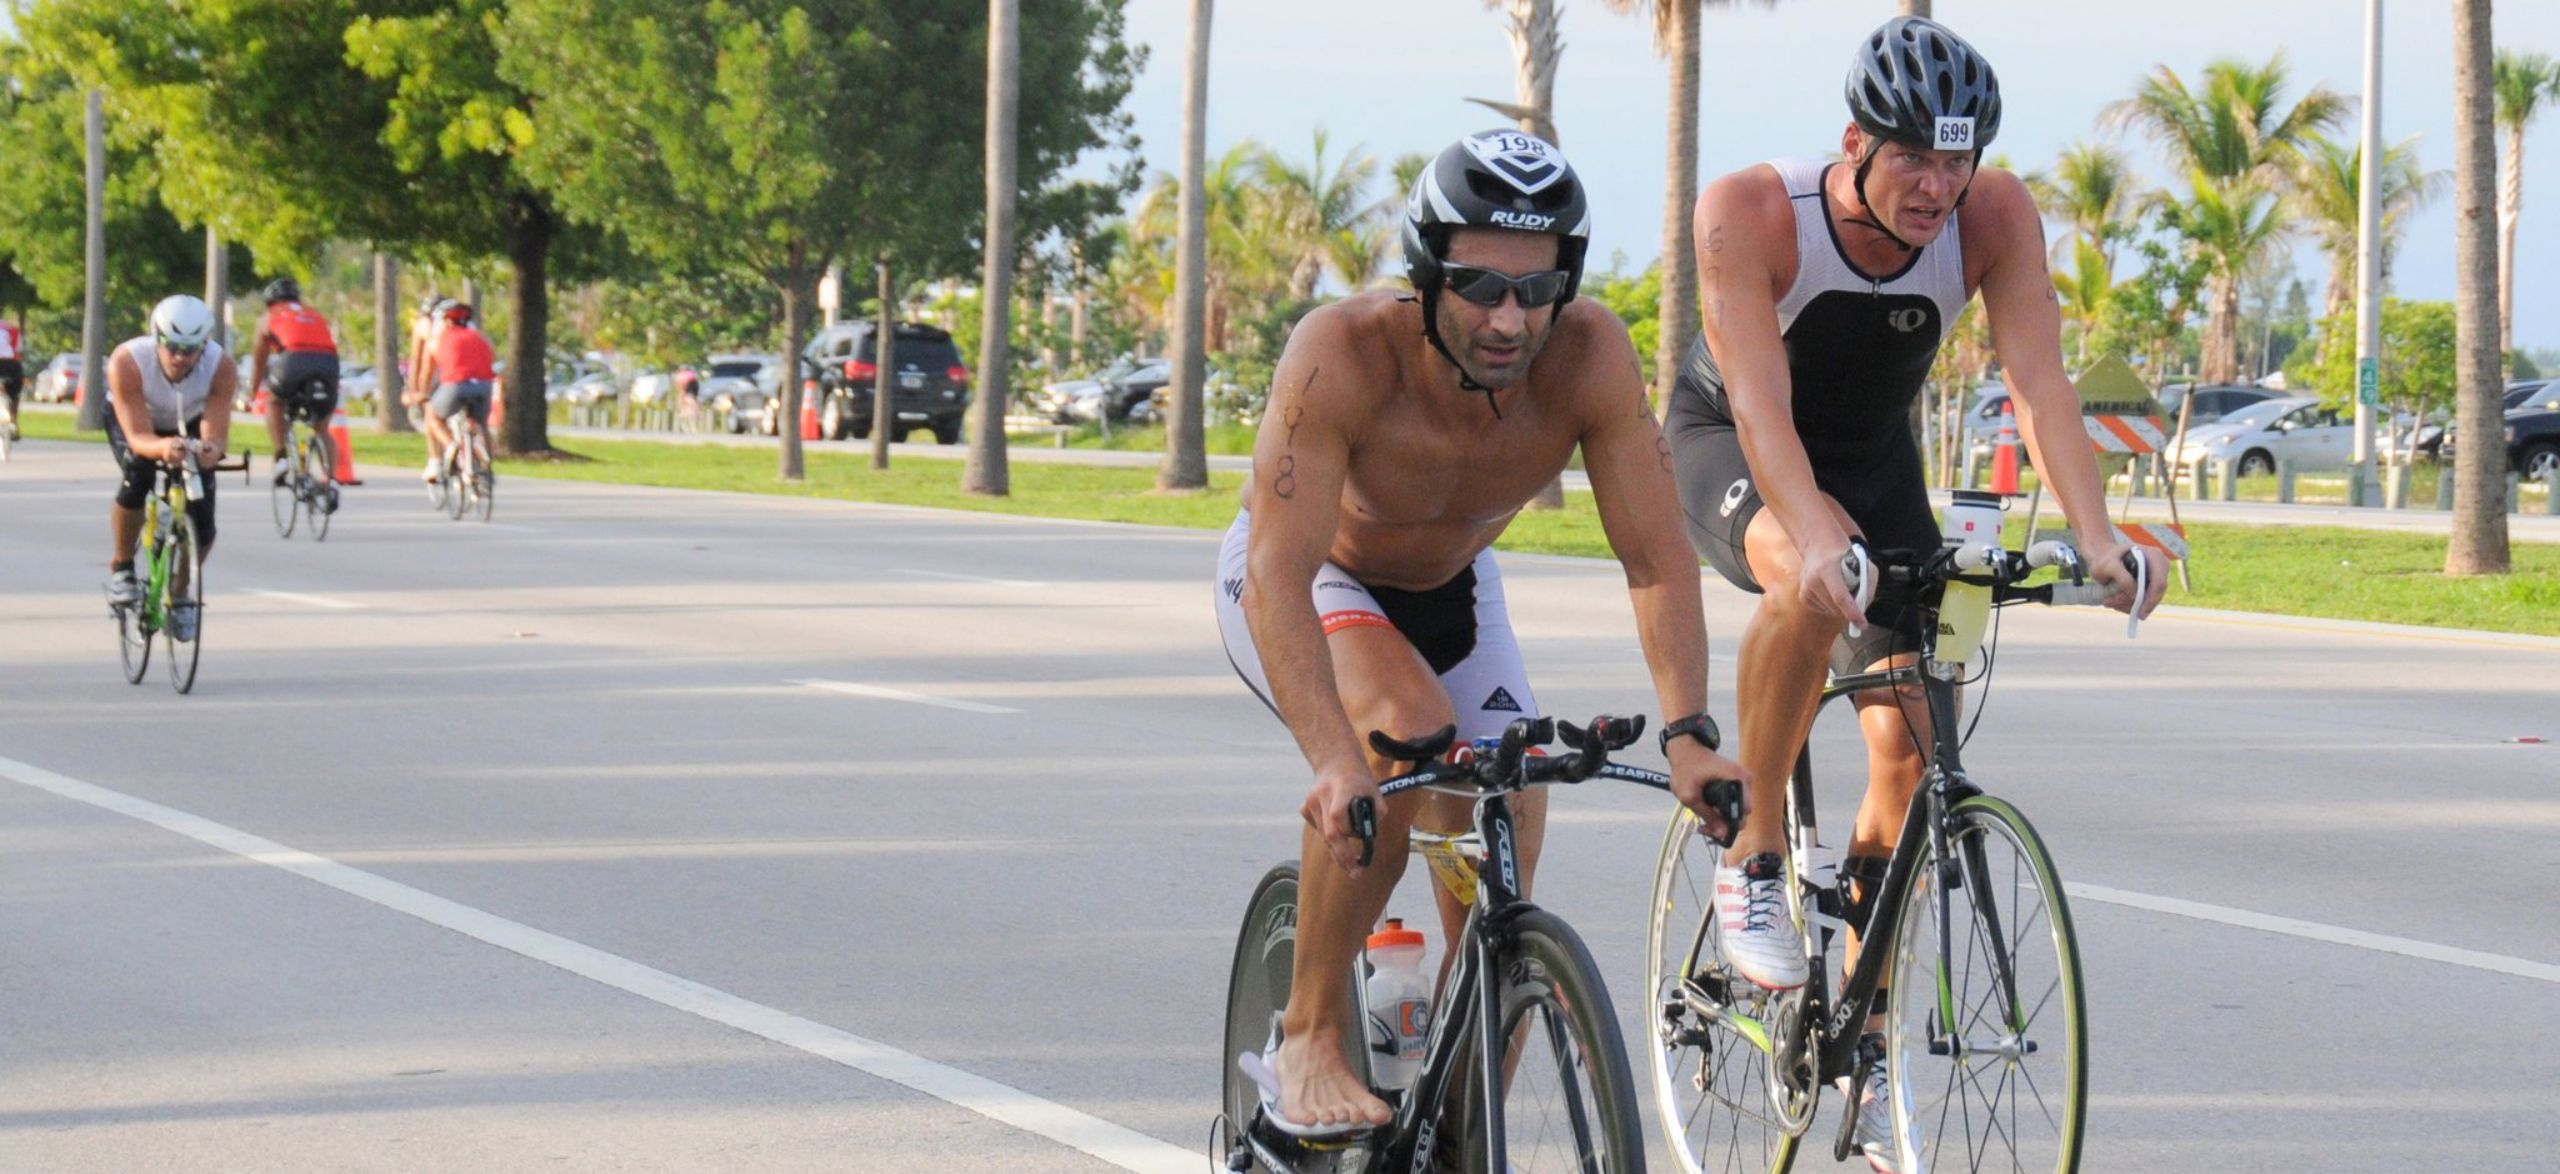 Fort Lauderdale Triathlon Bike